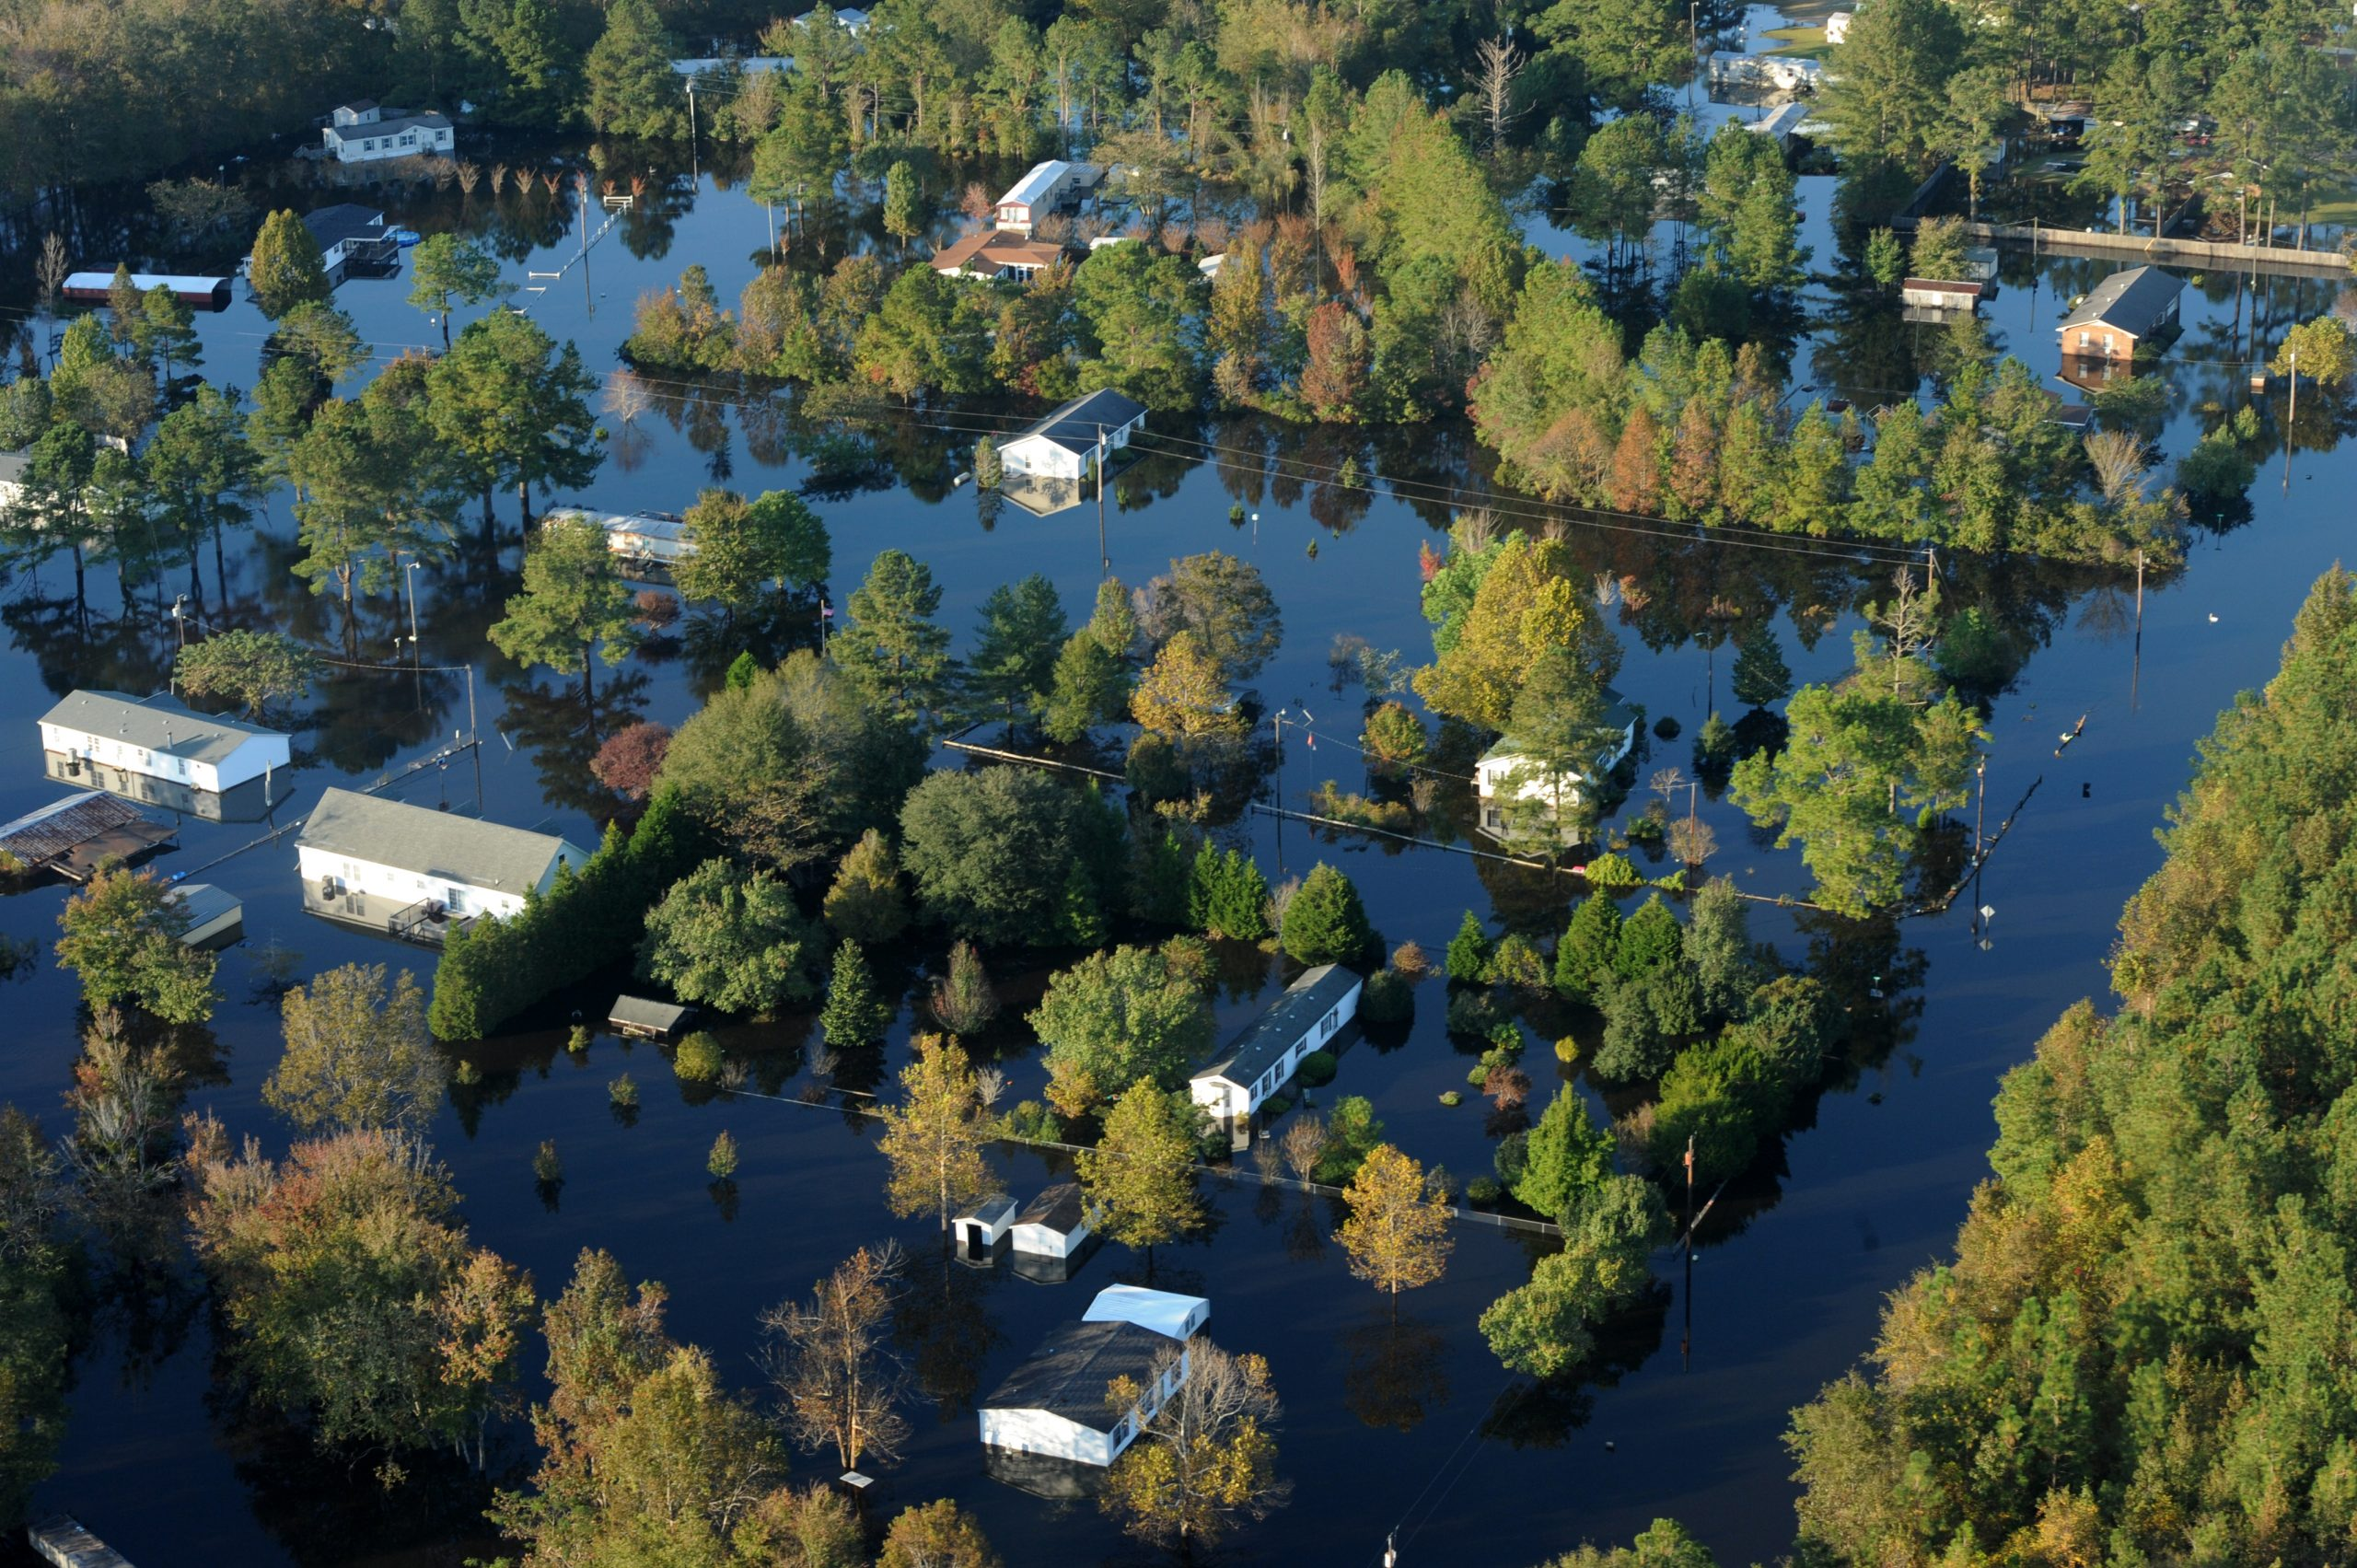 Floodwaters from Hurricane Matthew (2016) surround many houses in Craven County, N.C. Photo by Jocelyn Augustino/FEMA.